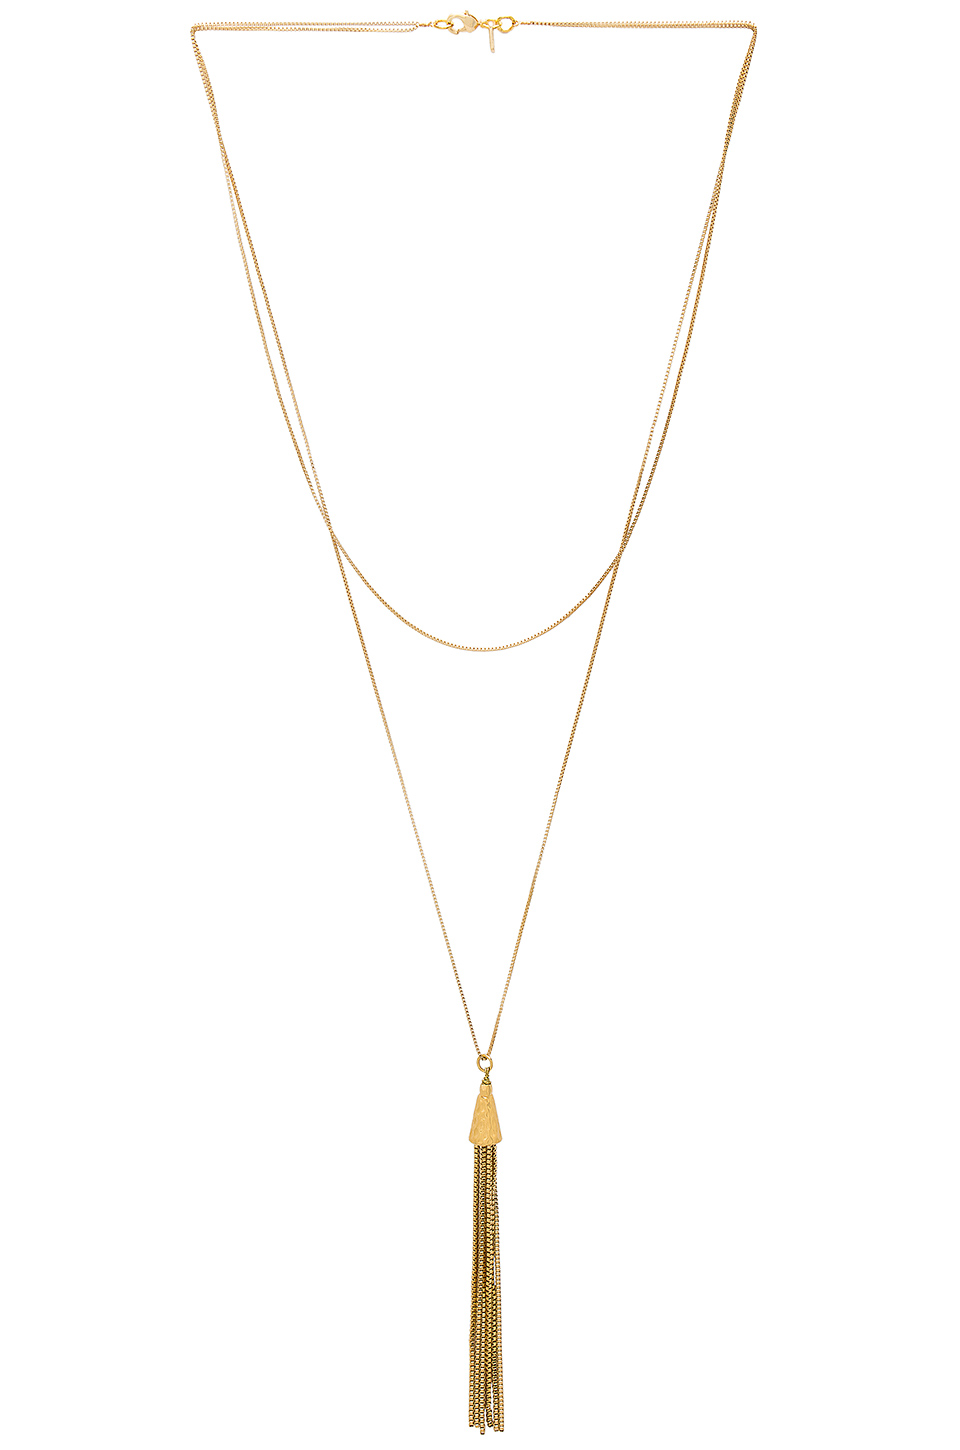 Designer Choker Necklaces In Black Gold And More